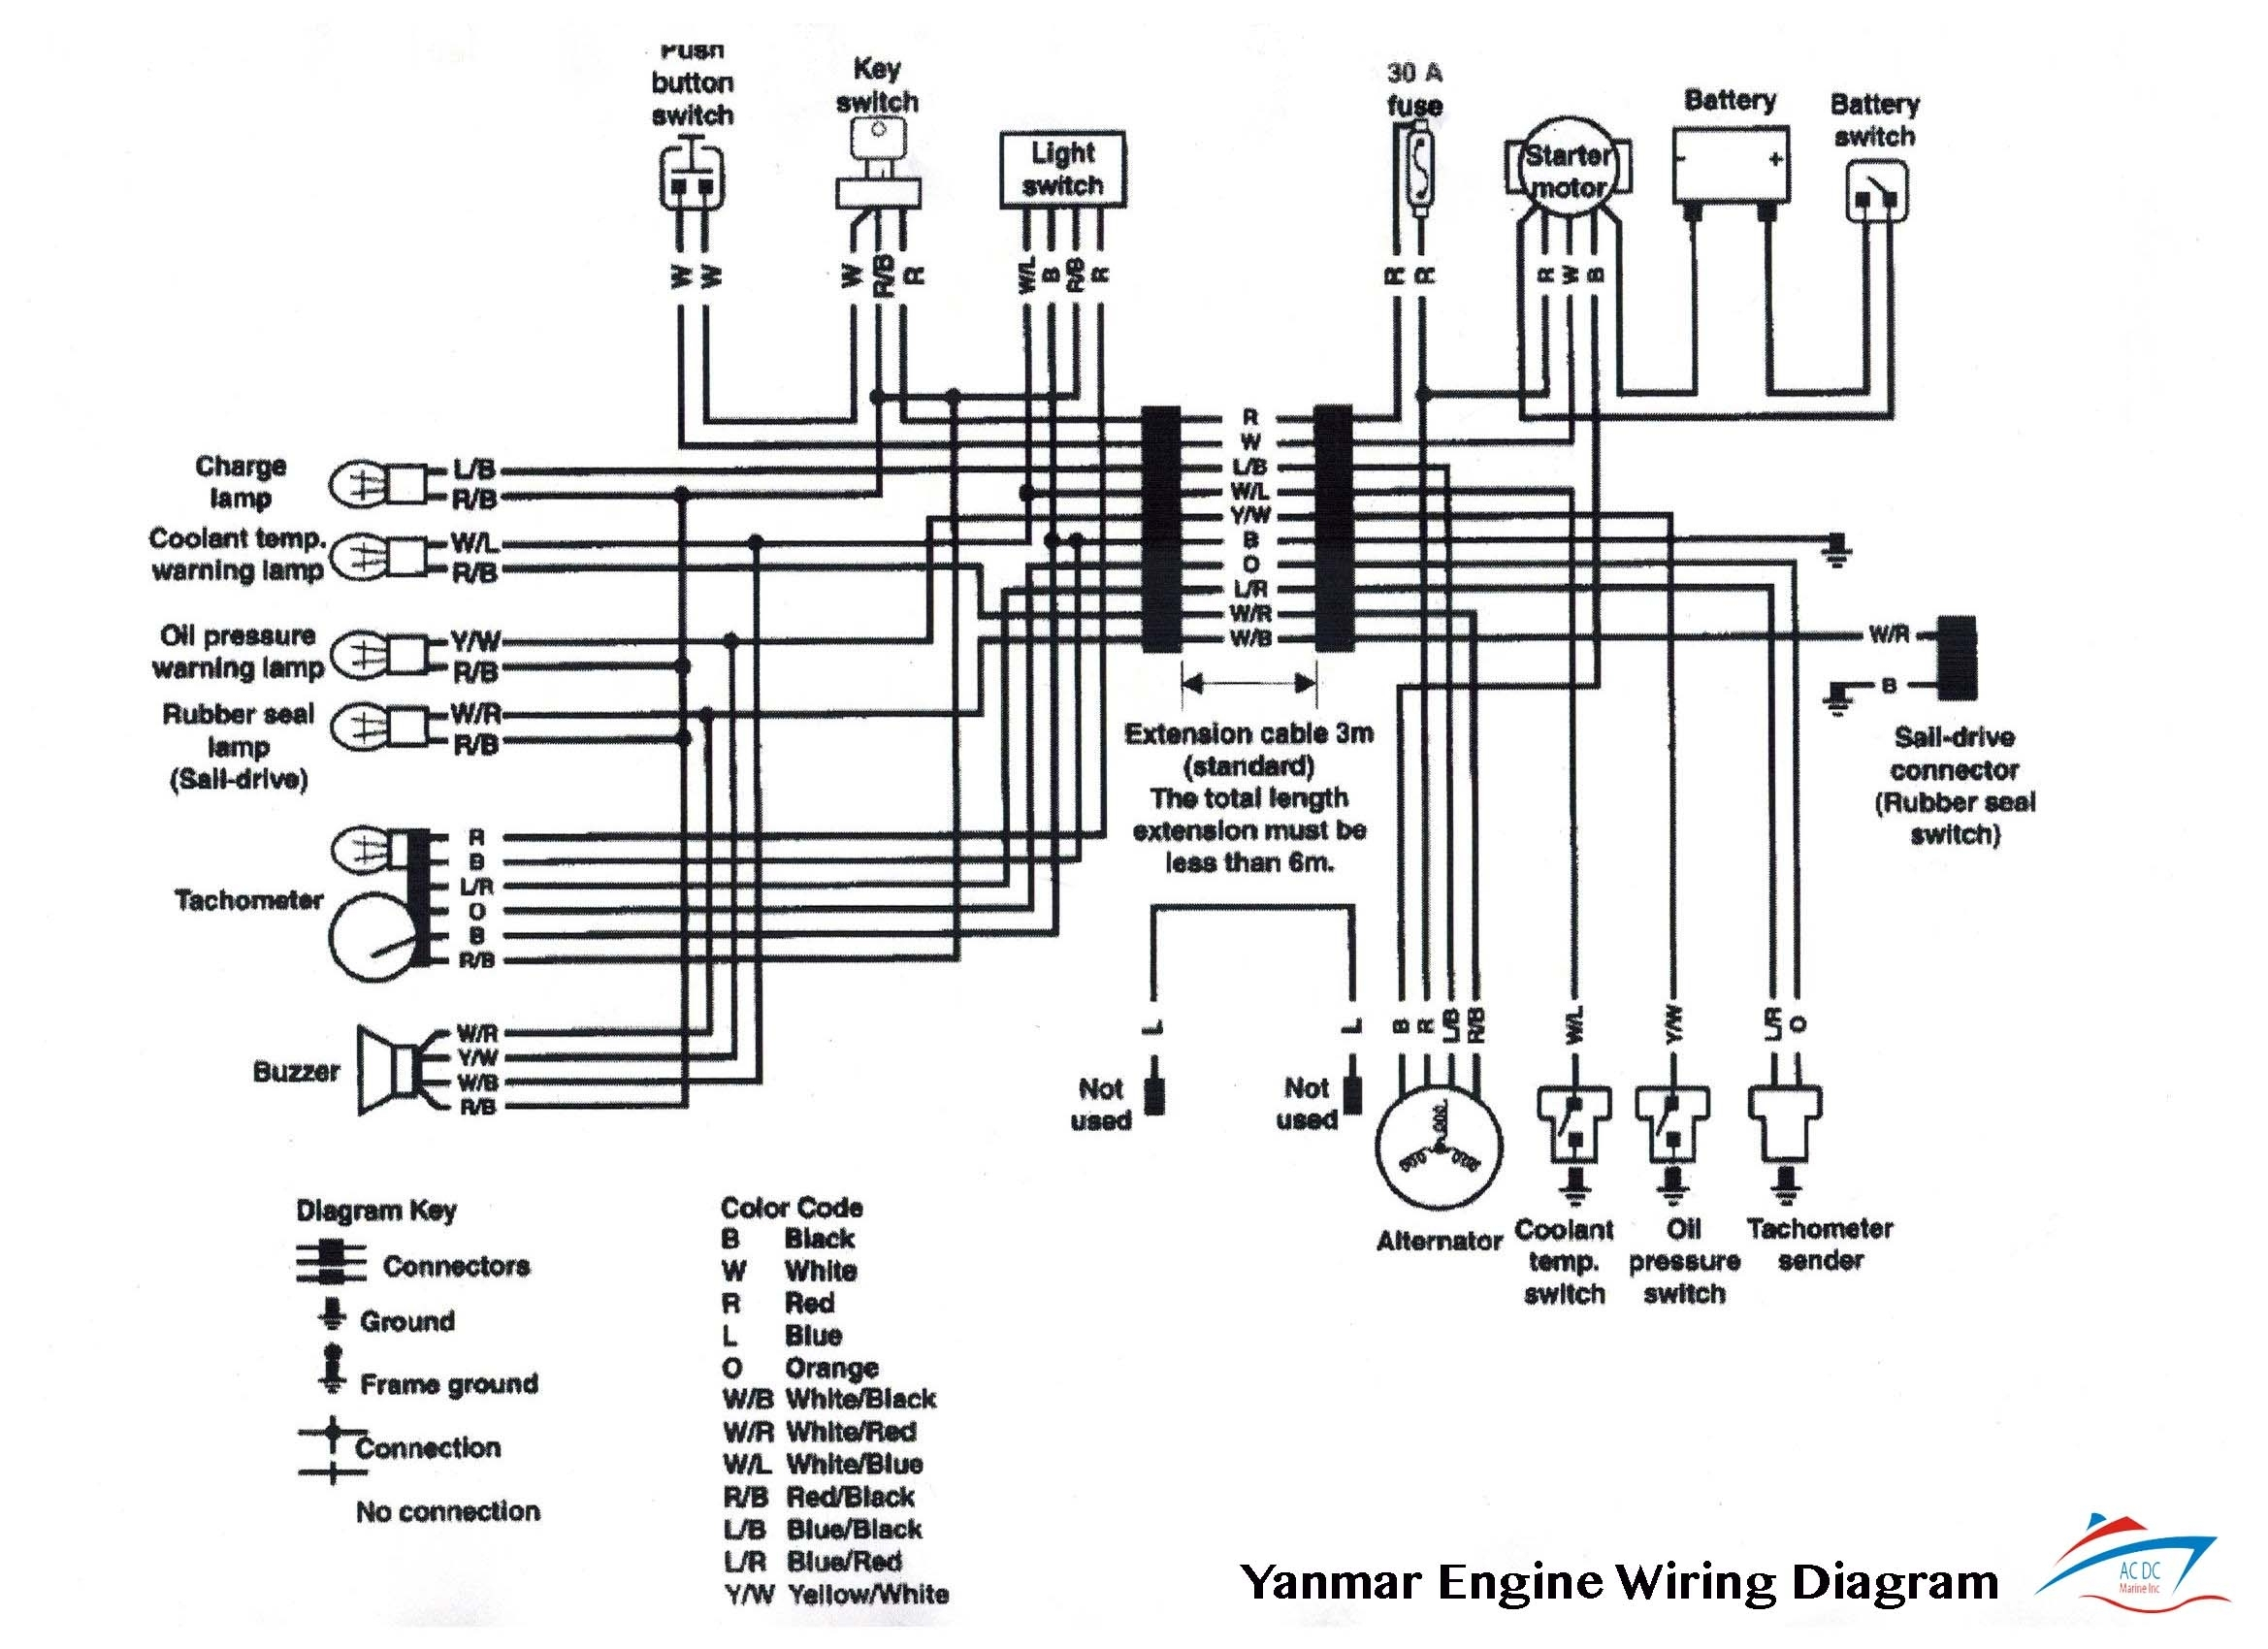 Quickcar Switch Panel Wiring Diagram - free download wiring diagrams